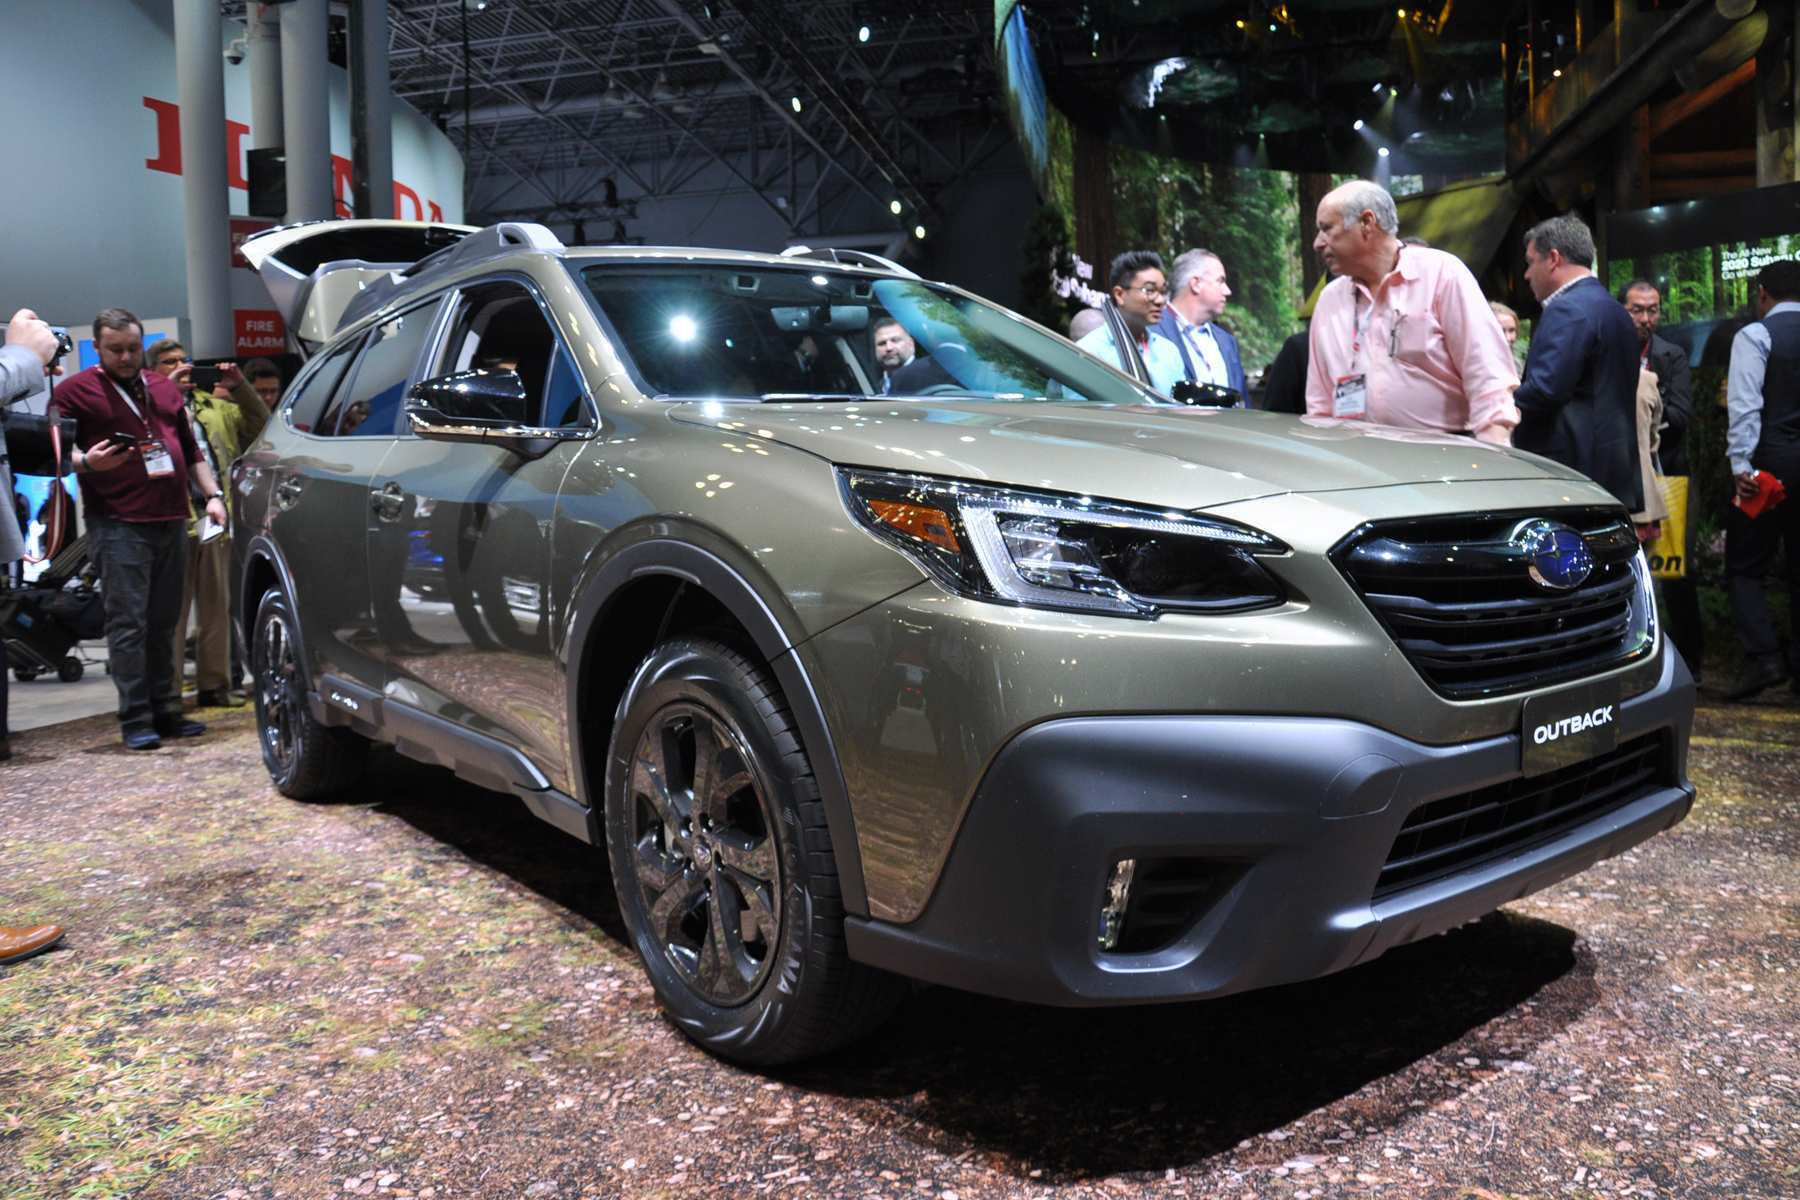 15 Great Subaru Outback New Model 2020 Release for Subaru Outback New Model 2020